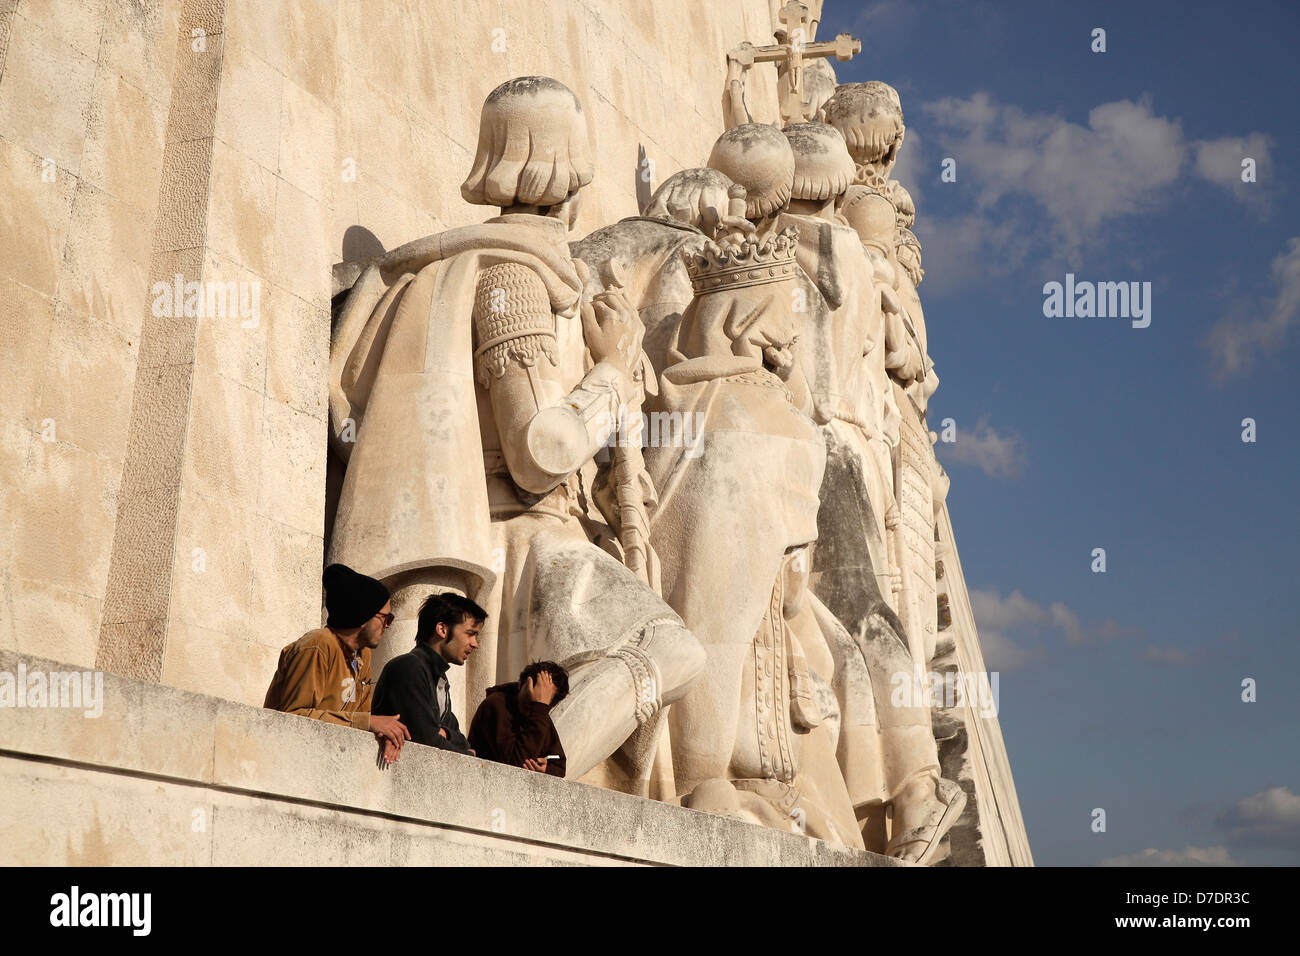 tourists at the Monument to the Discoveries Padrao dos Descobrimentos in Belem, Lisbon, , Europe - Stock Image